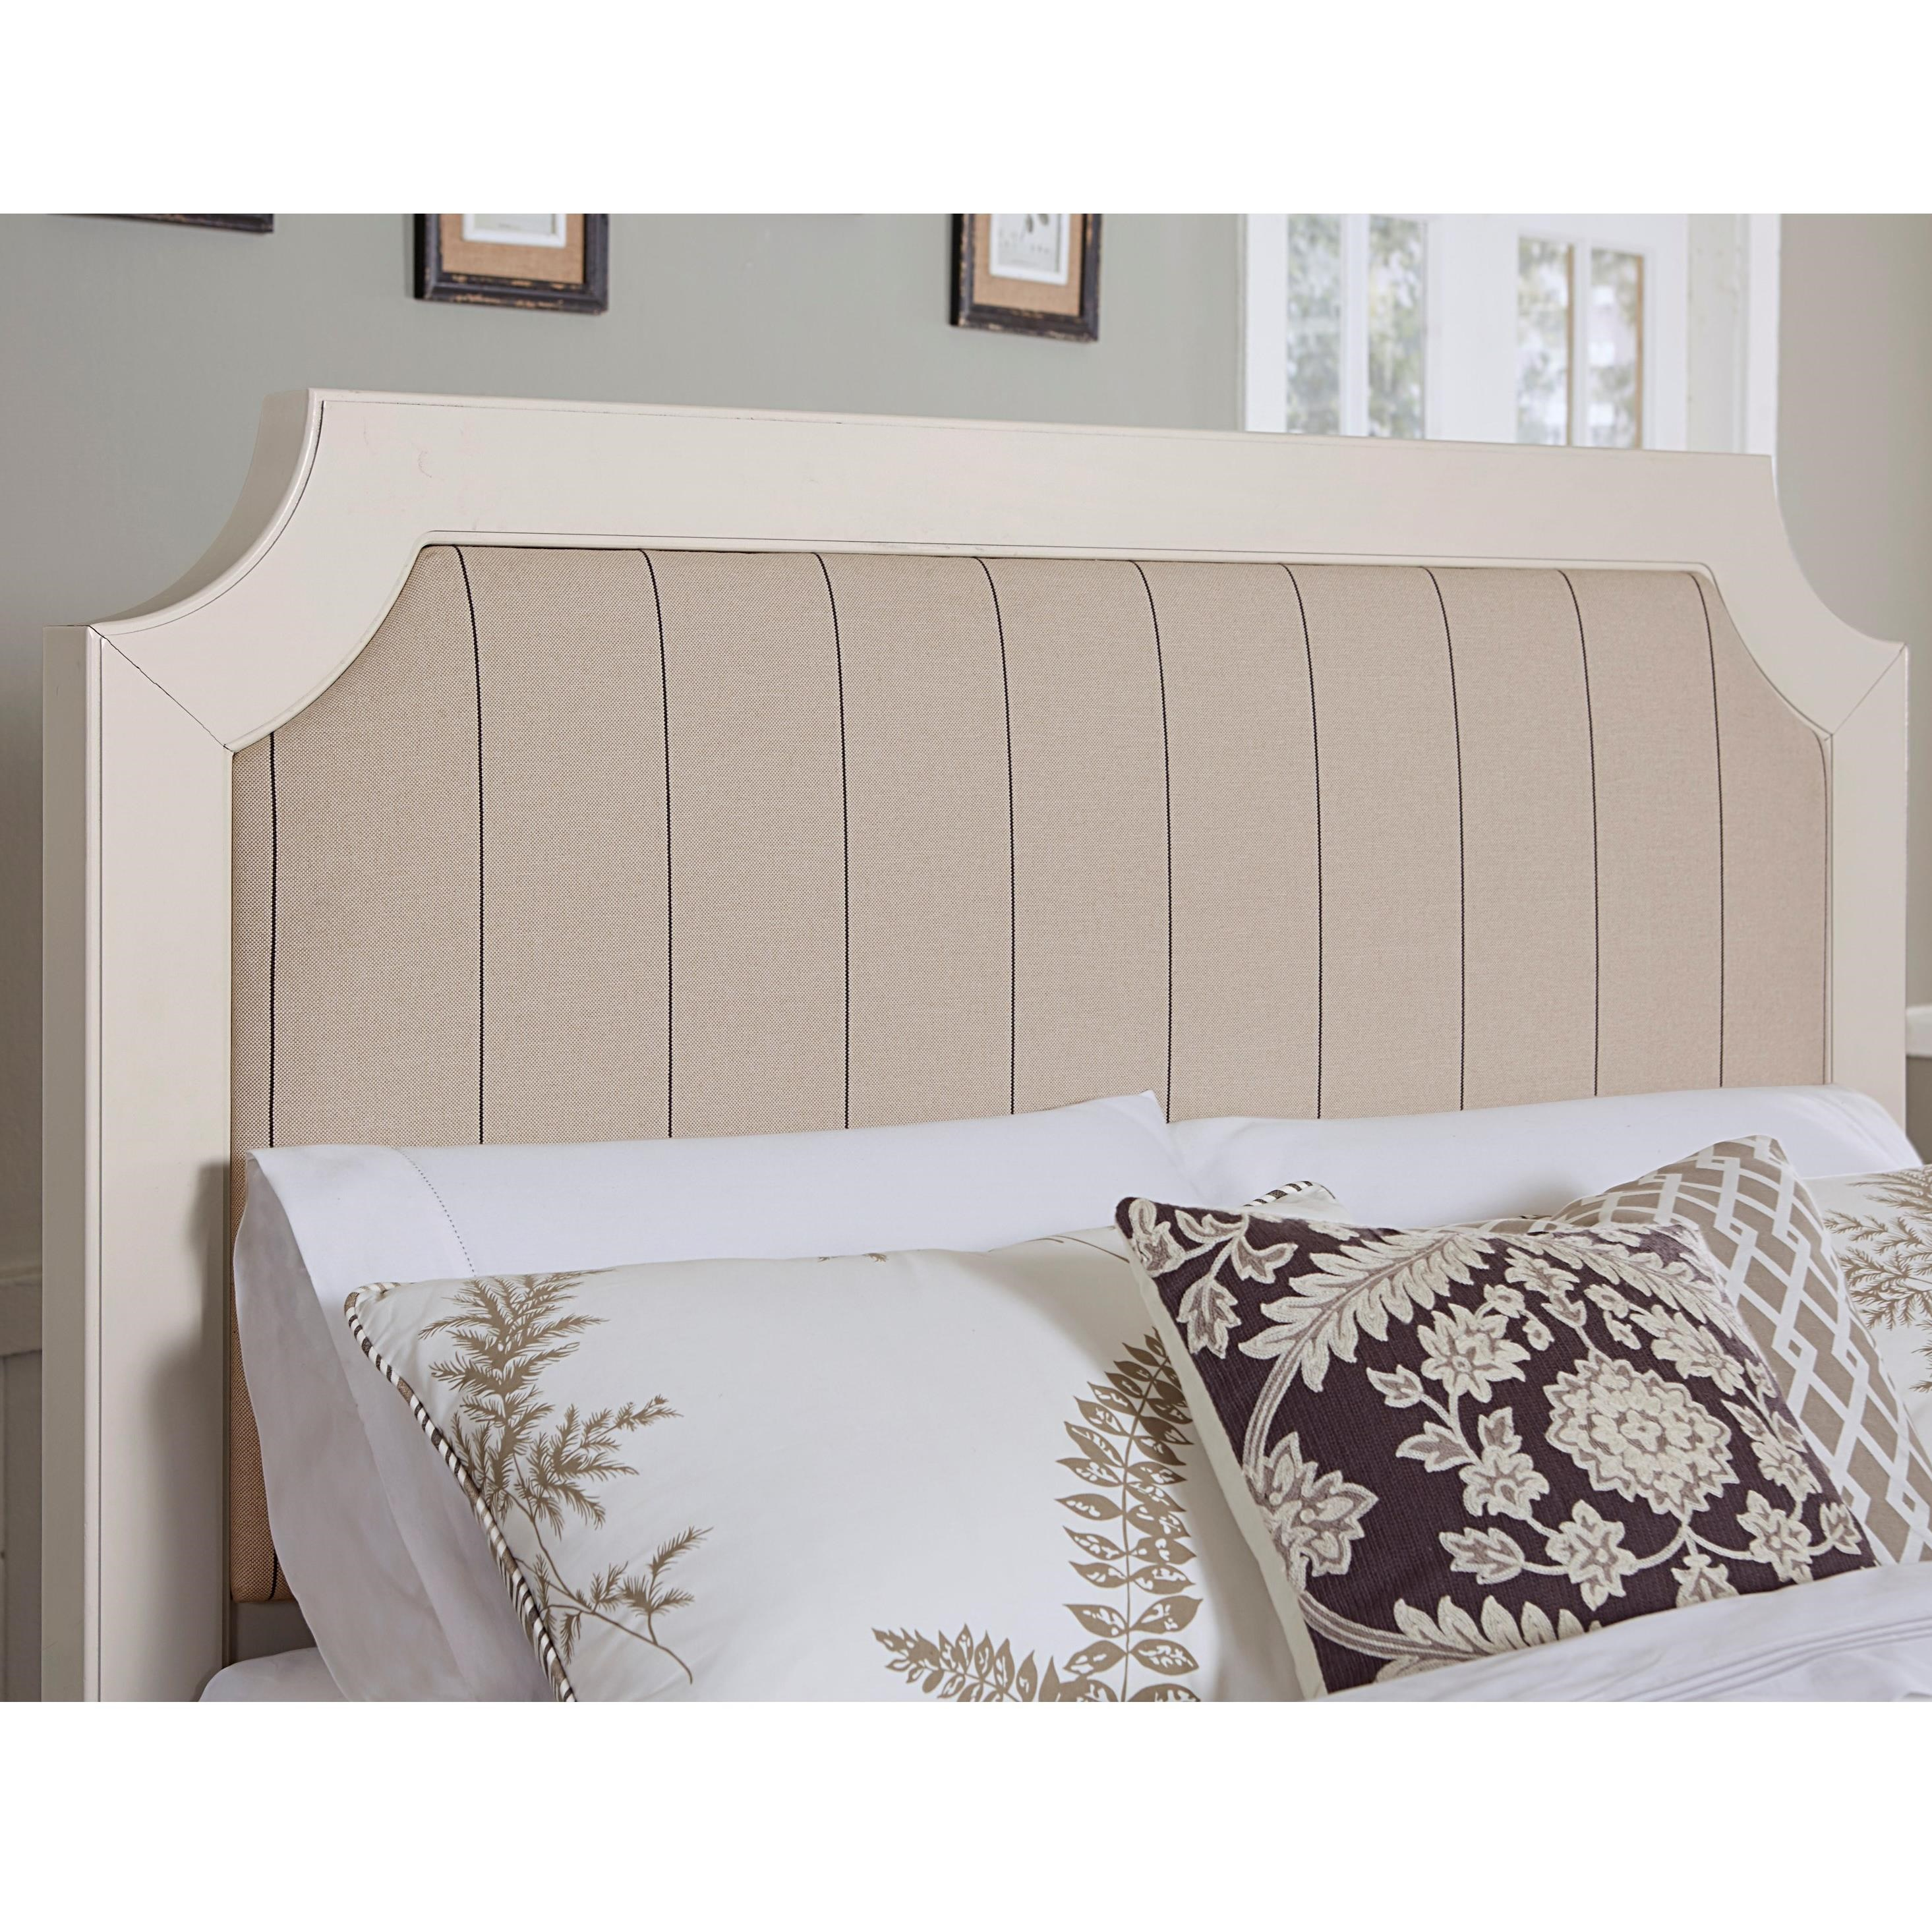 Bungalow Queen Upholstered Headboard by Laurel Mercantile Co. at Johnny Janosik